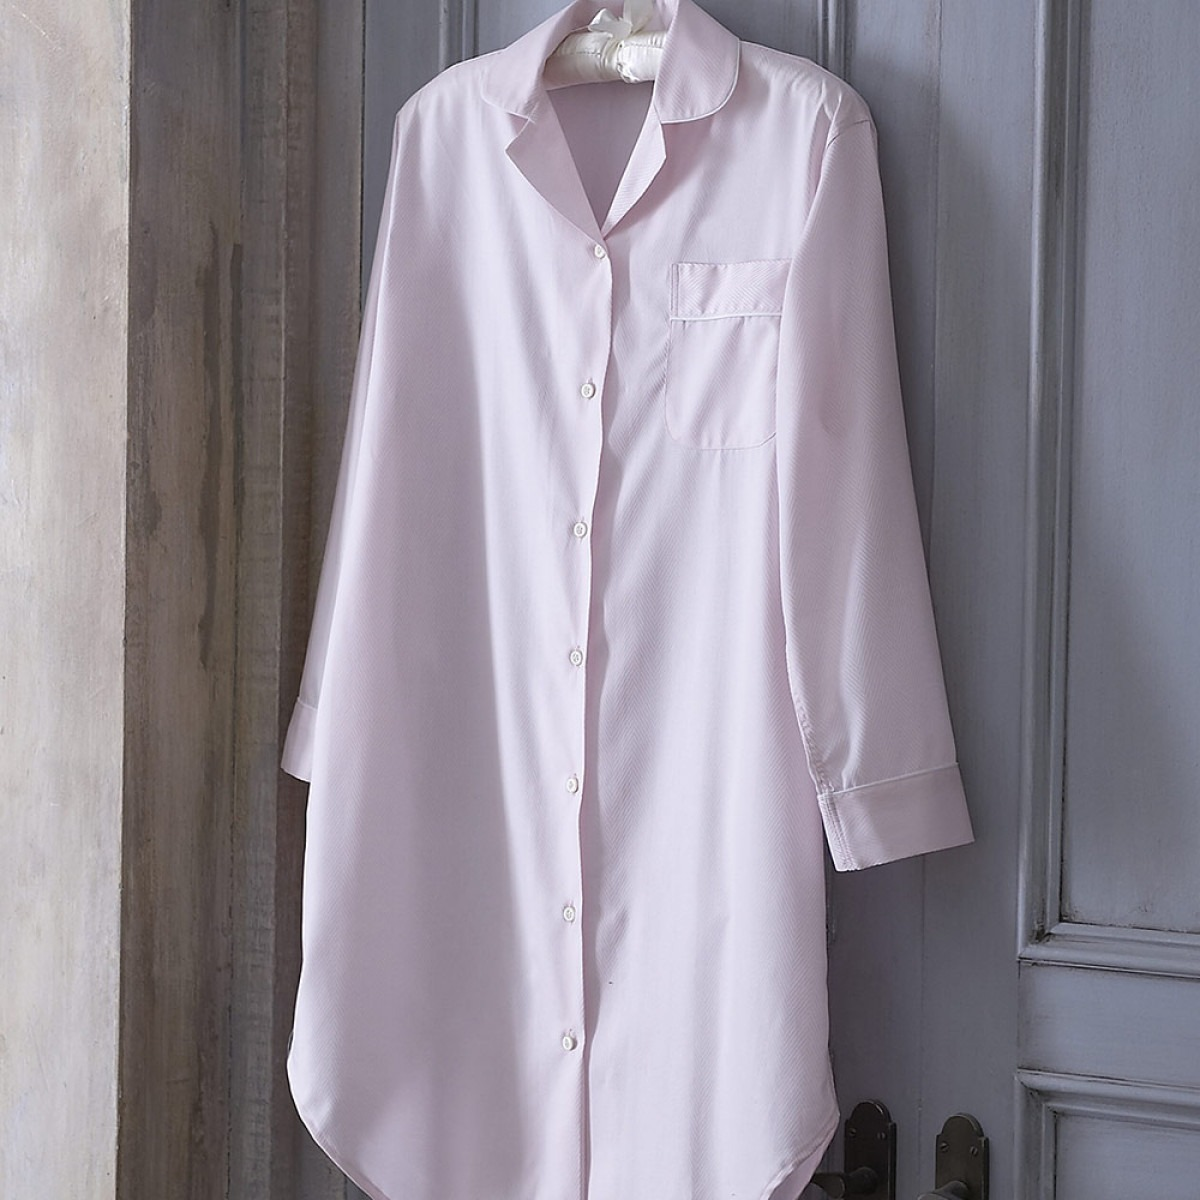 Bonsoir ladies nightdress